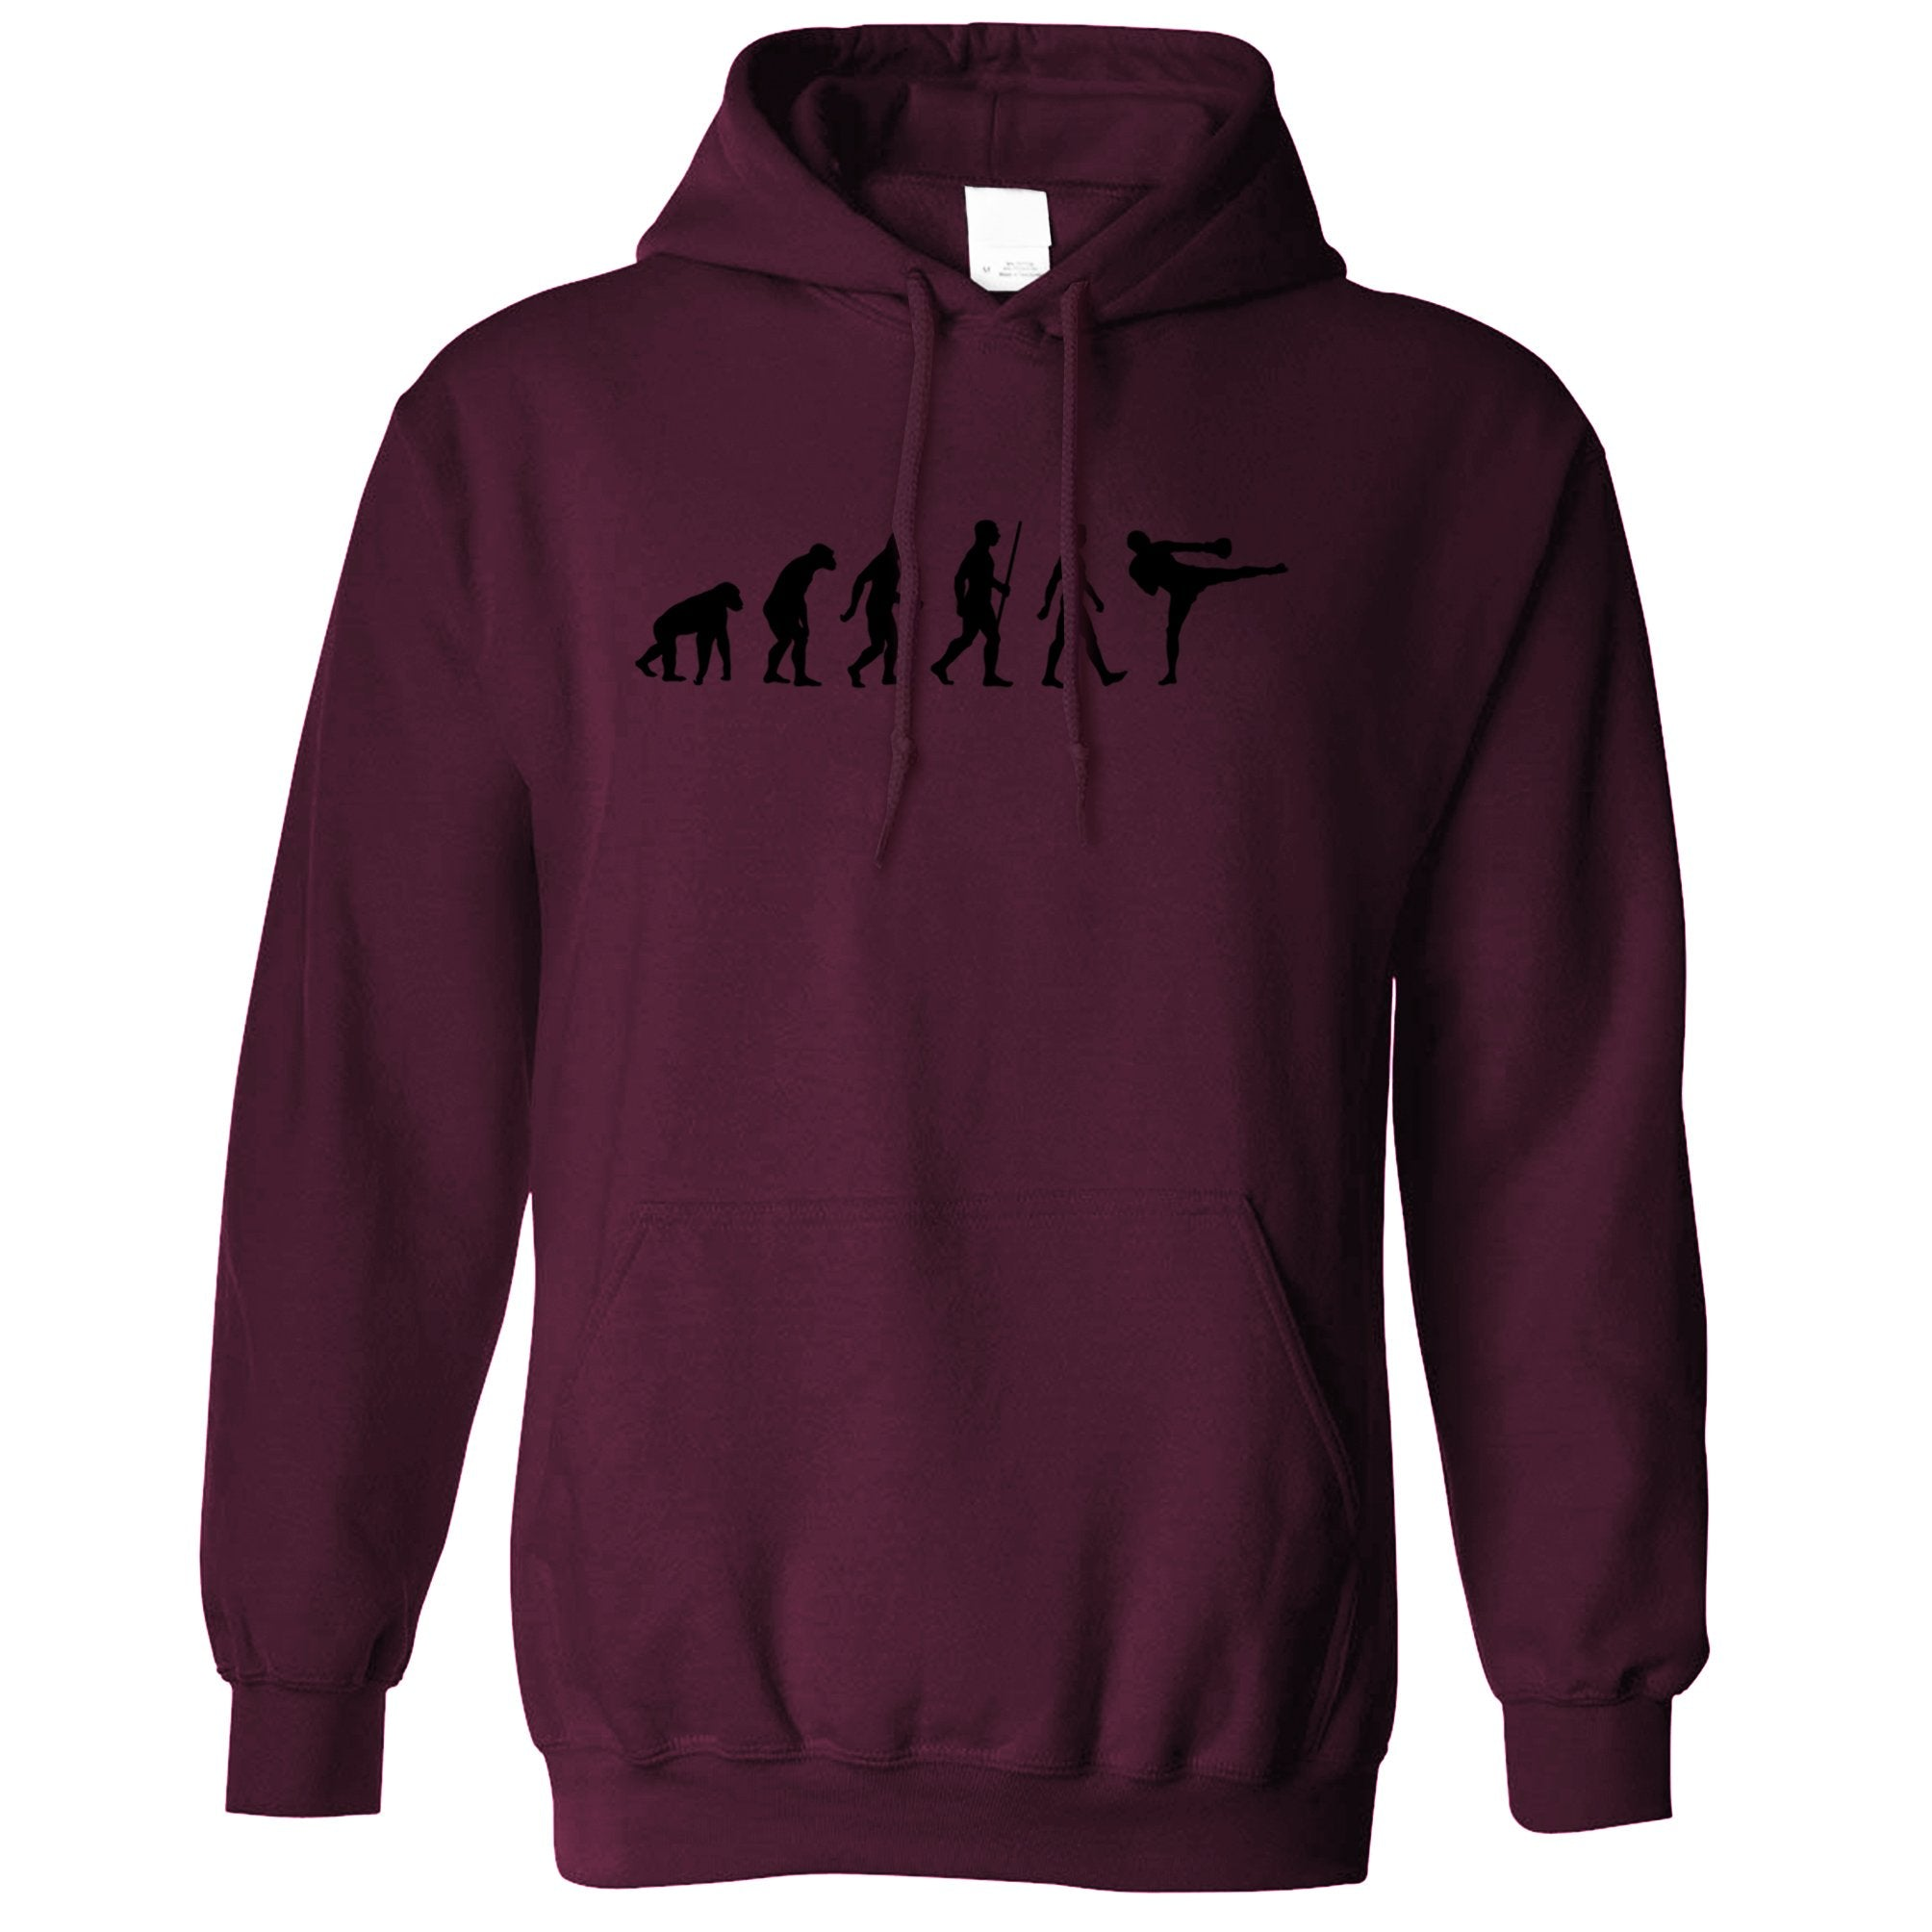 Kickboxing Hoodie The Evolution of Kickboxing Hooded Jumper